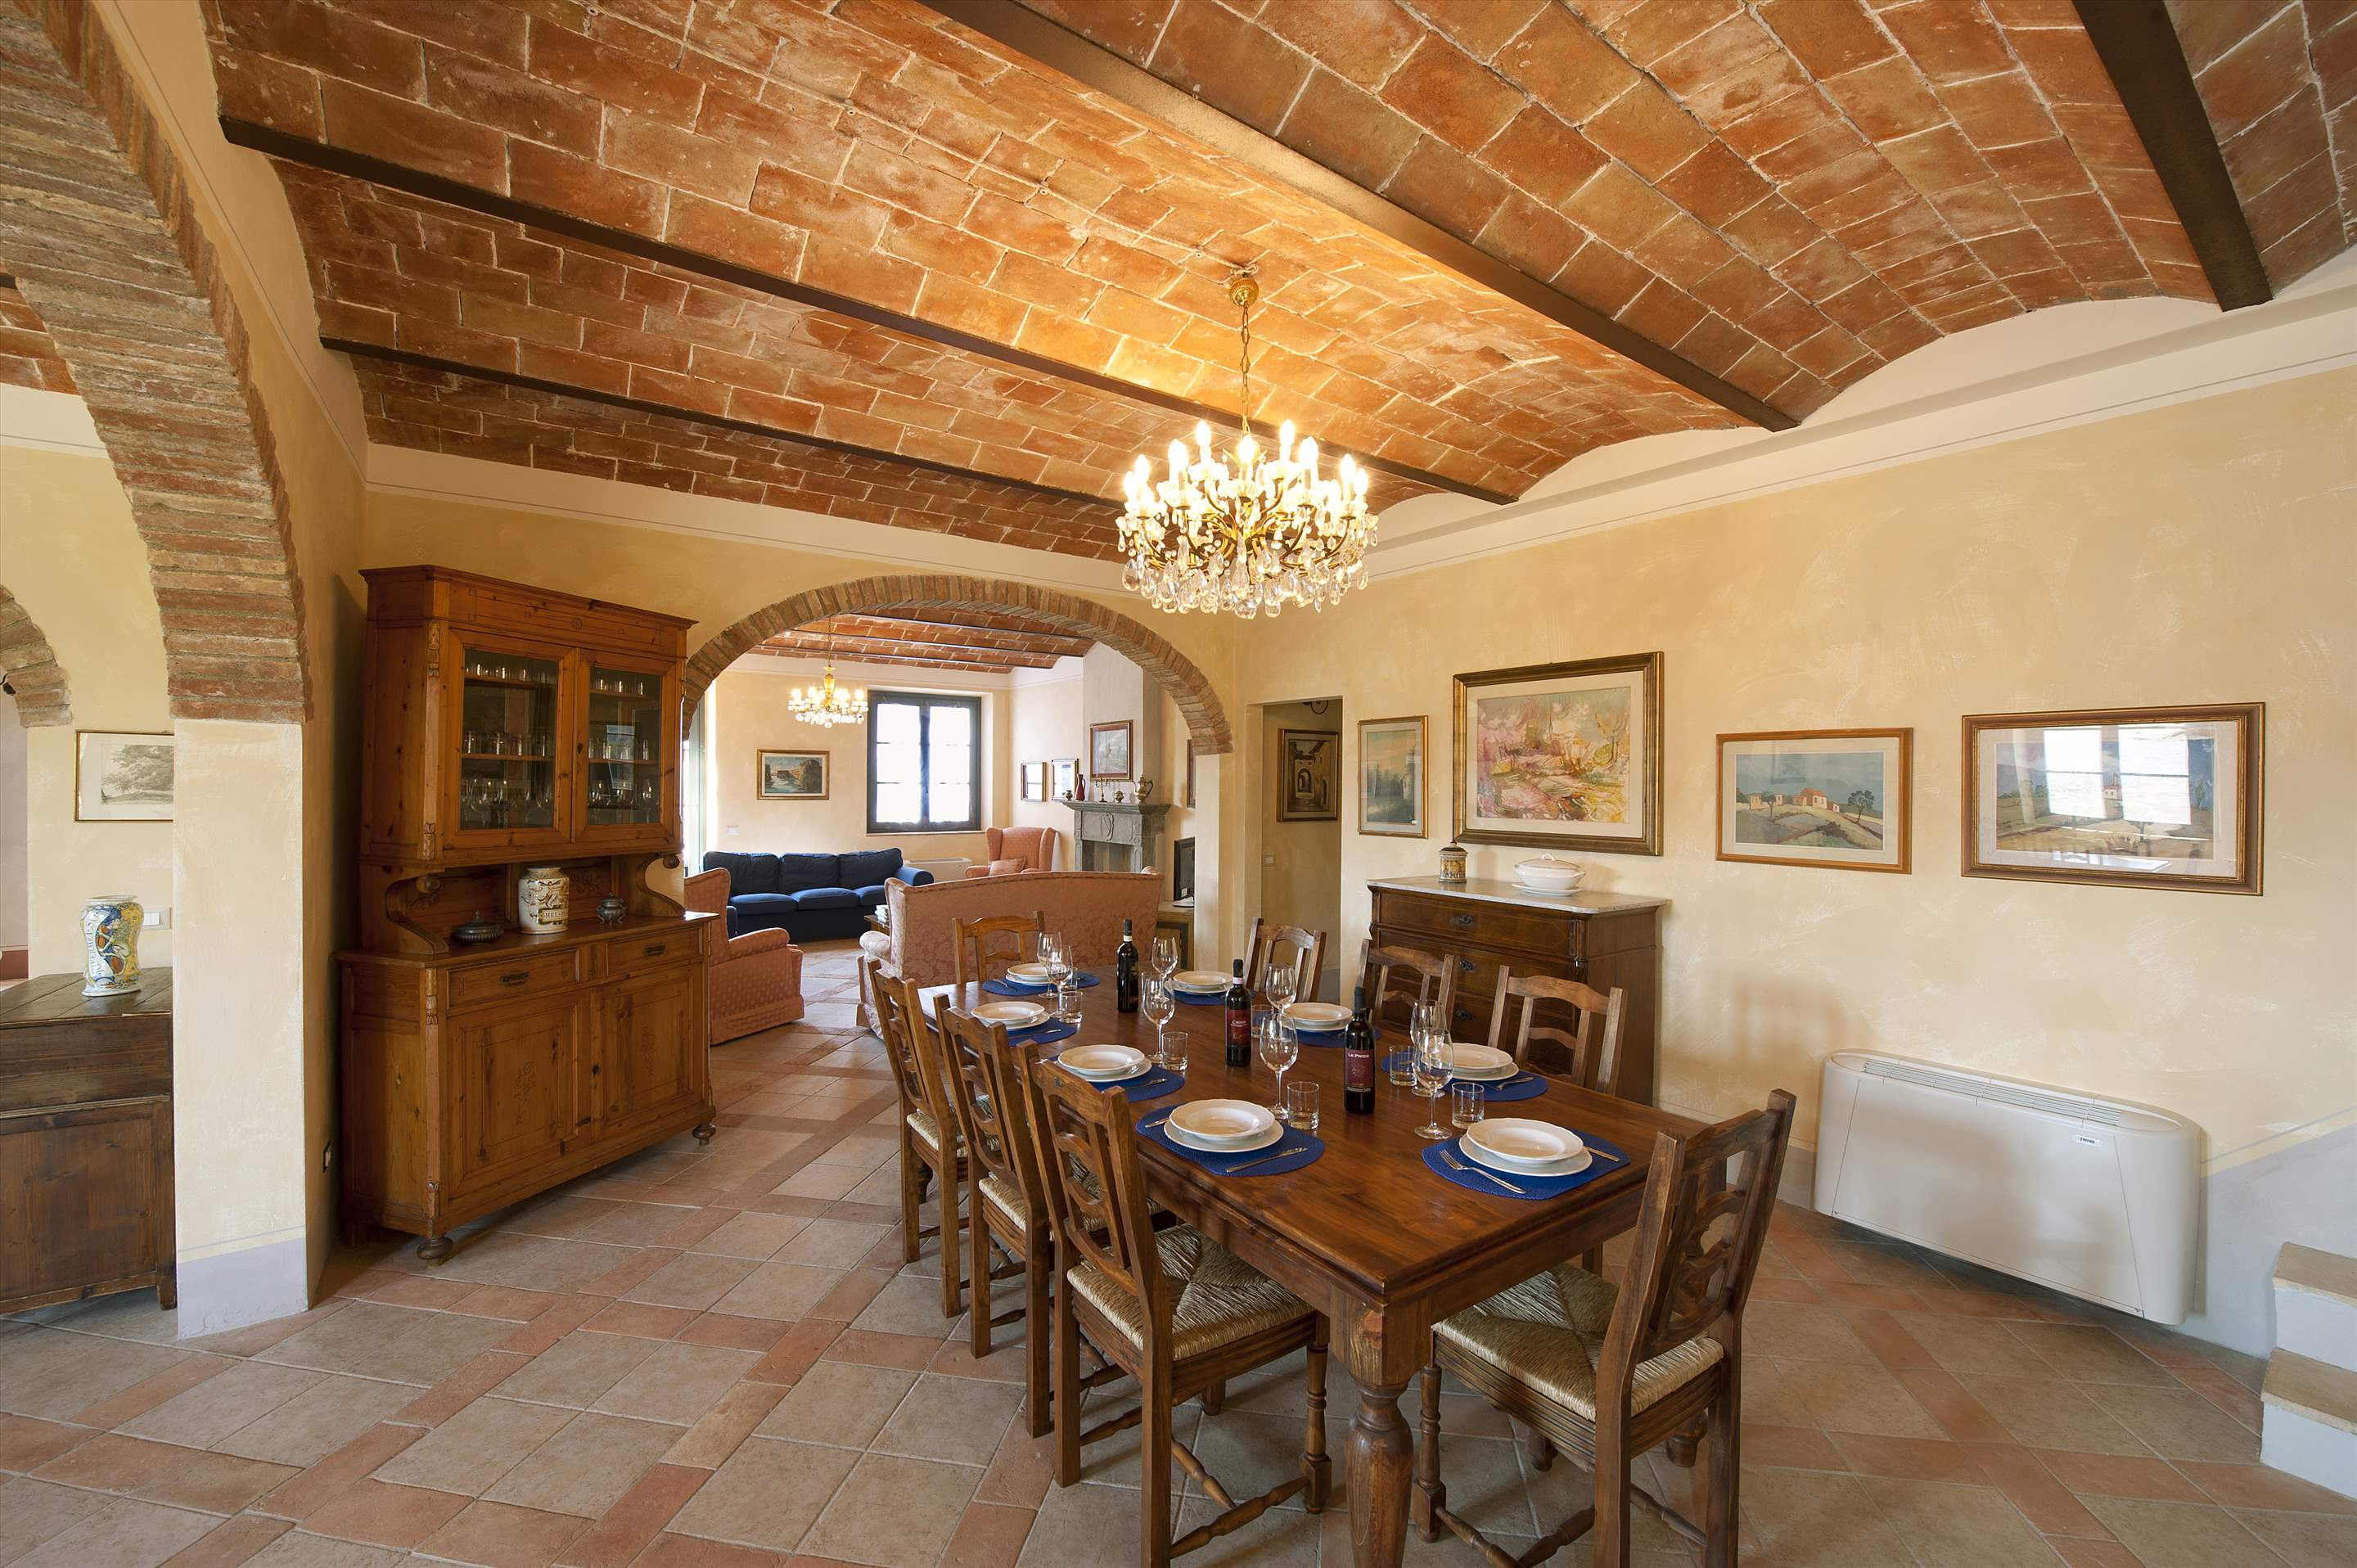 Podere Casacce, Ground Floor, 4 bedroom villa in Tuscany Coast, Tuscany Photo #9